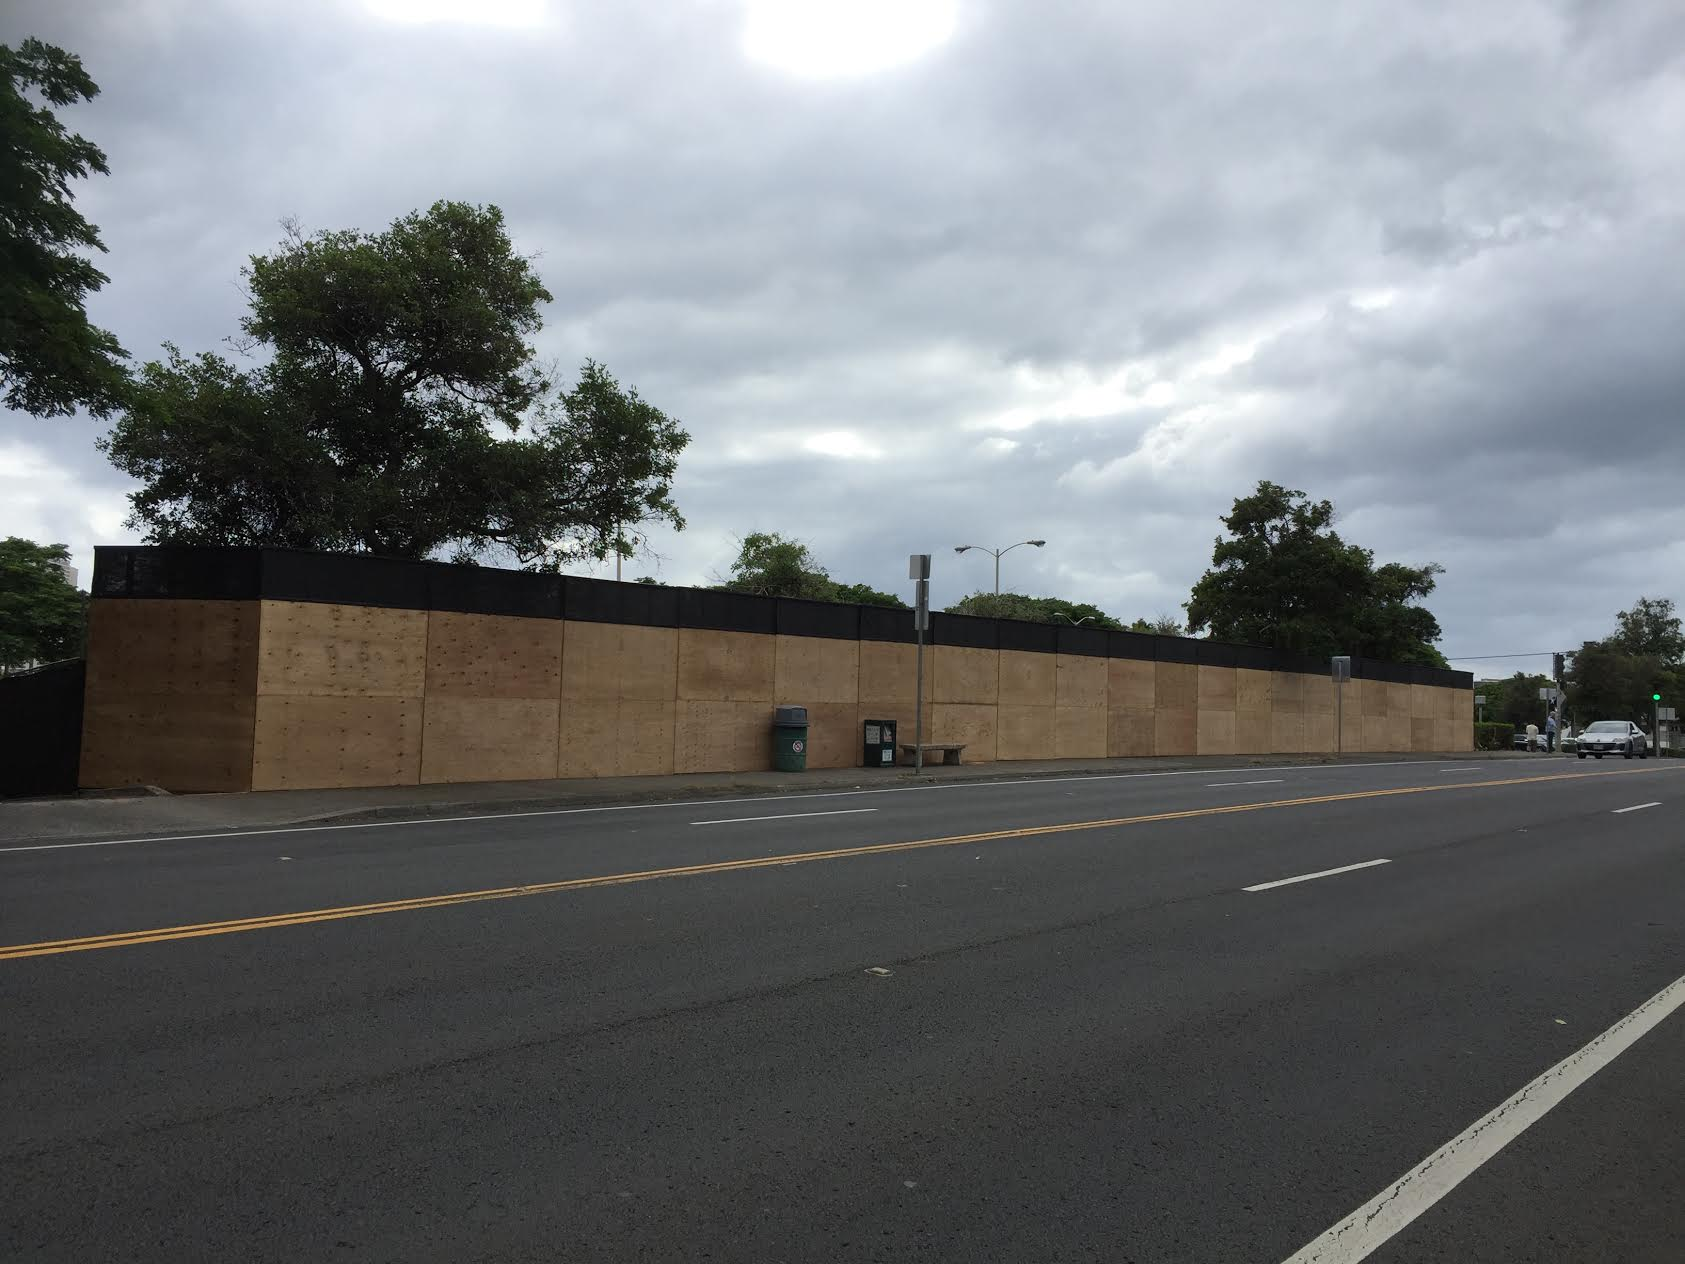 Here is what the original plywood barricade looked like. It's going to be so much better with art on it! Please also visit:  www.hawaii.edu/art/art-at-large/  to see more images and read the various artists' statements about their individual pieces.